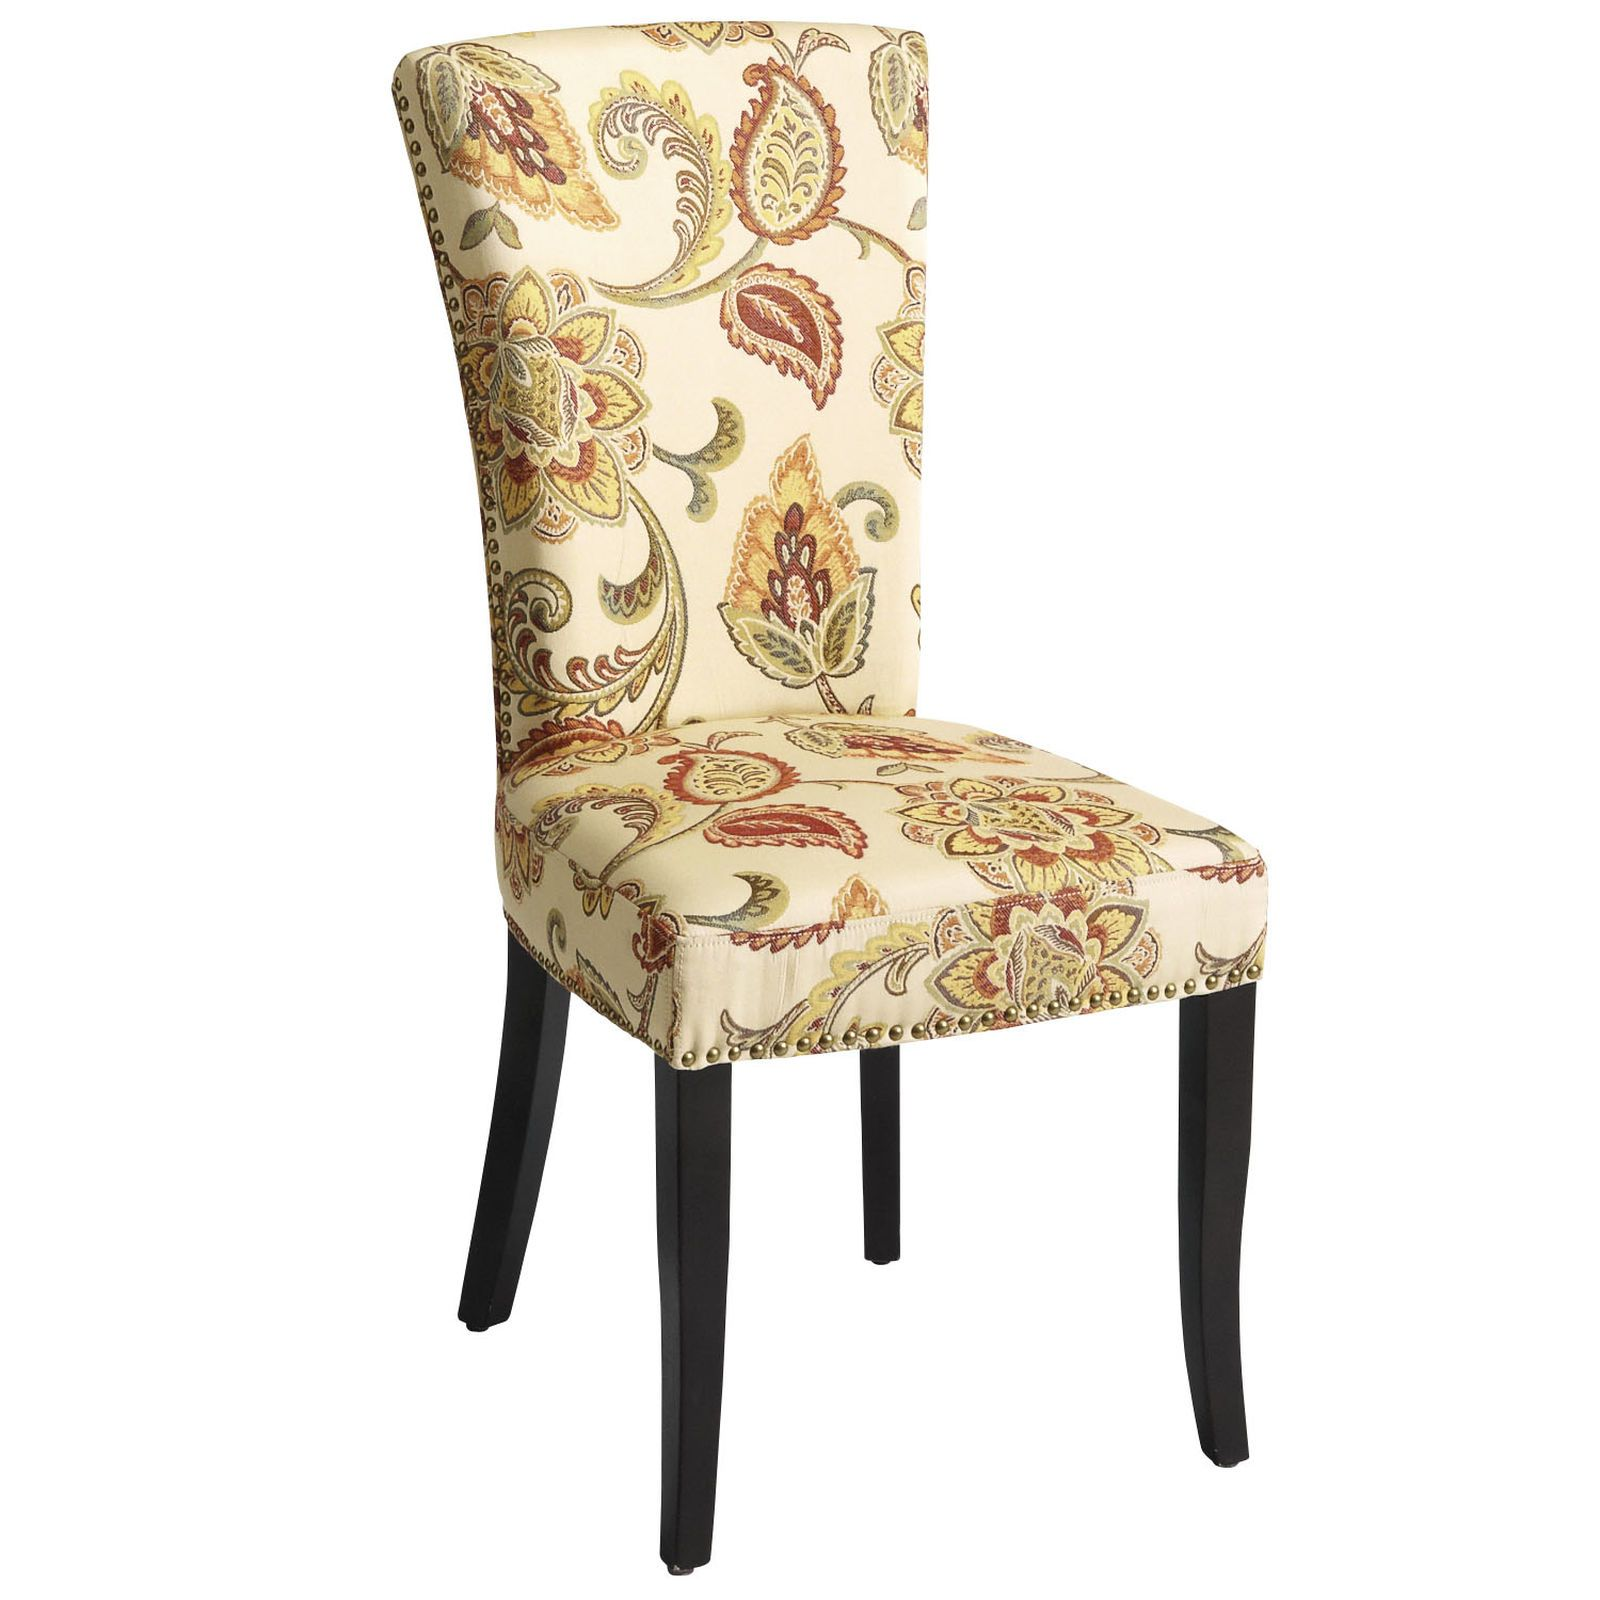 Adelaide Ochre Floral Dining Chair with Espresso Wood  sc 1 st  Pinterest & Adelaide Ochre Floral Dining Chair with Espresso Wood | Jacobean ...